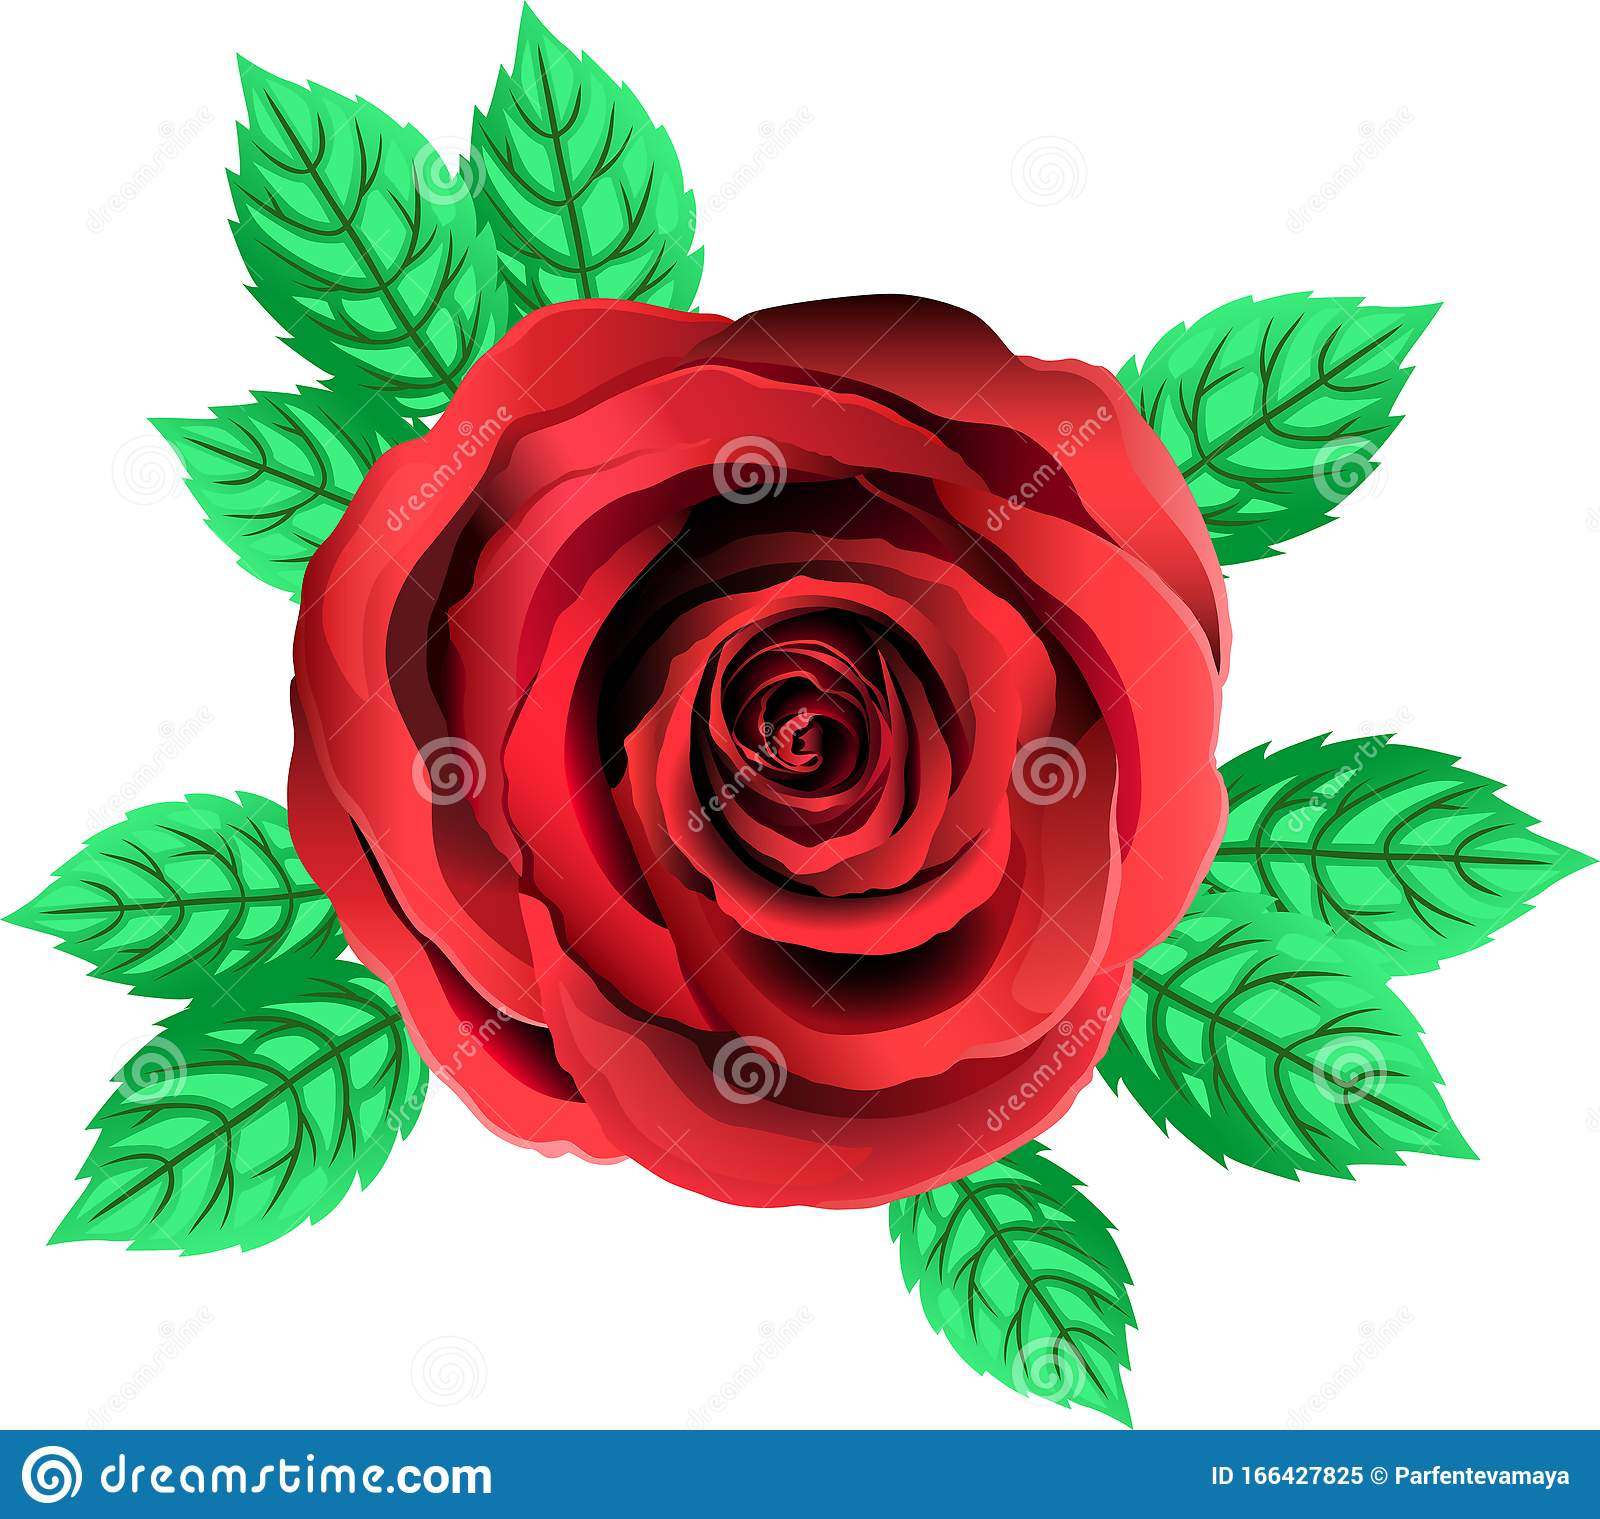 Free Rose Cliparts, Download Free Clip Art, Free Clip Art on Clipart Library